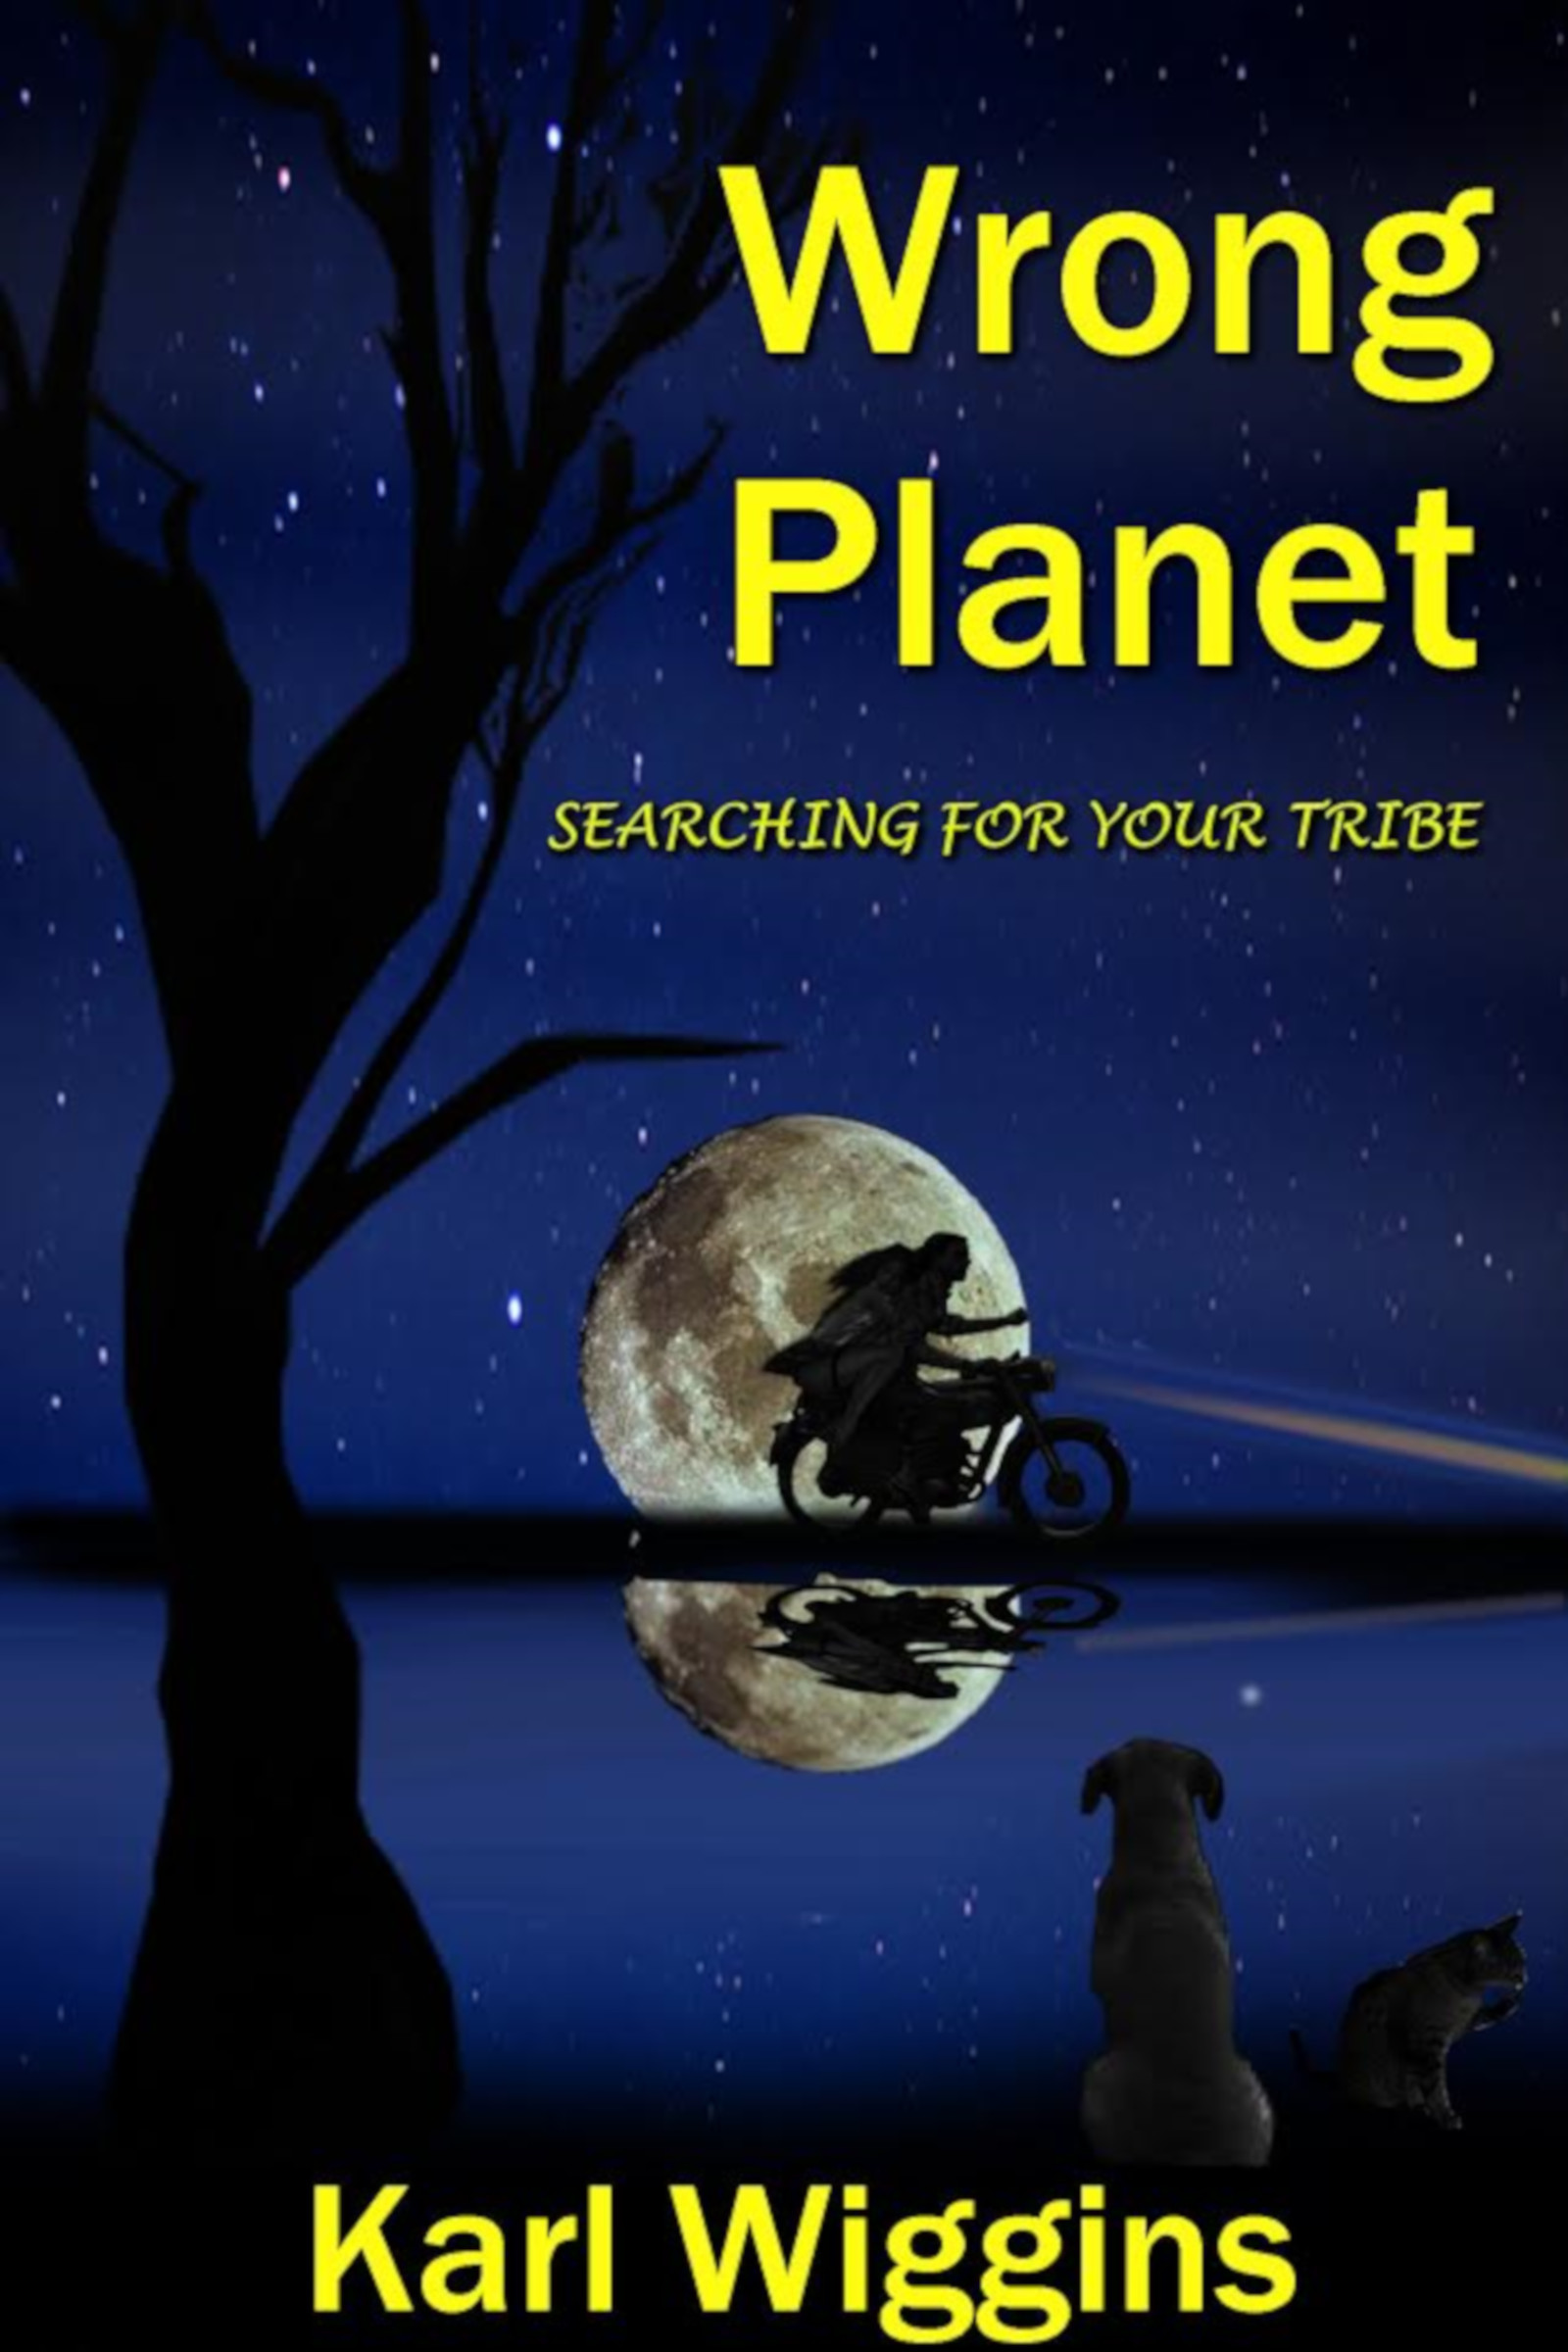 Wrong Planet - Searching for your Tribe